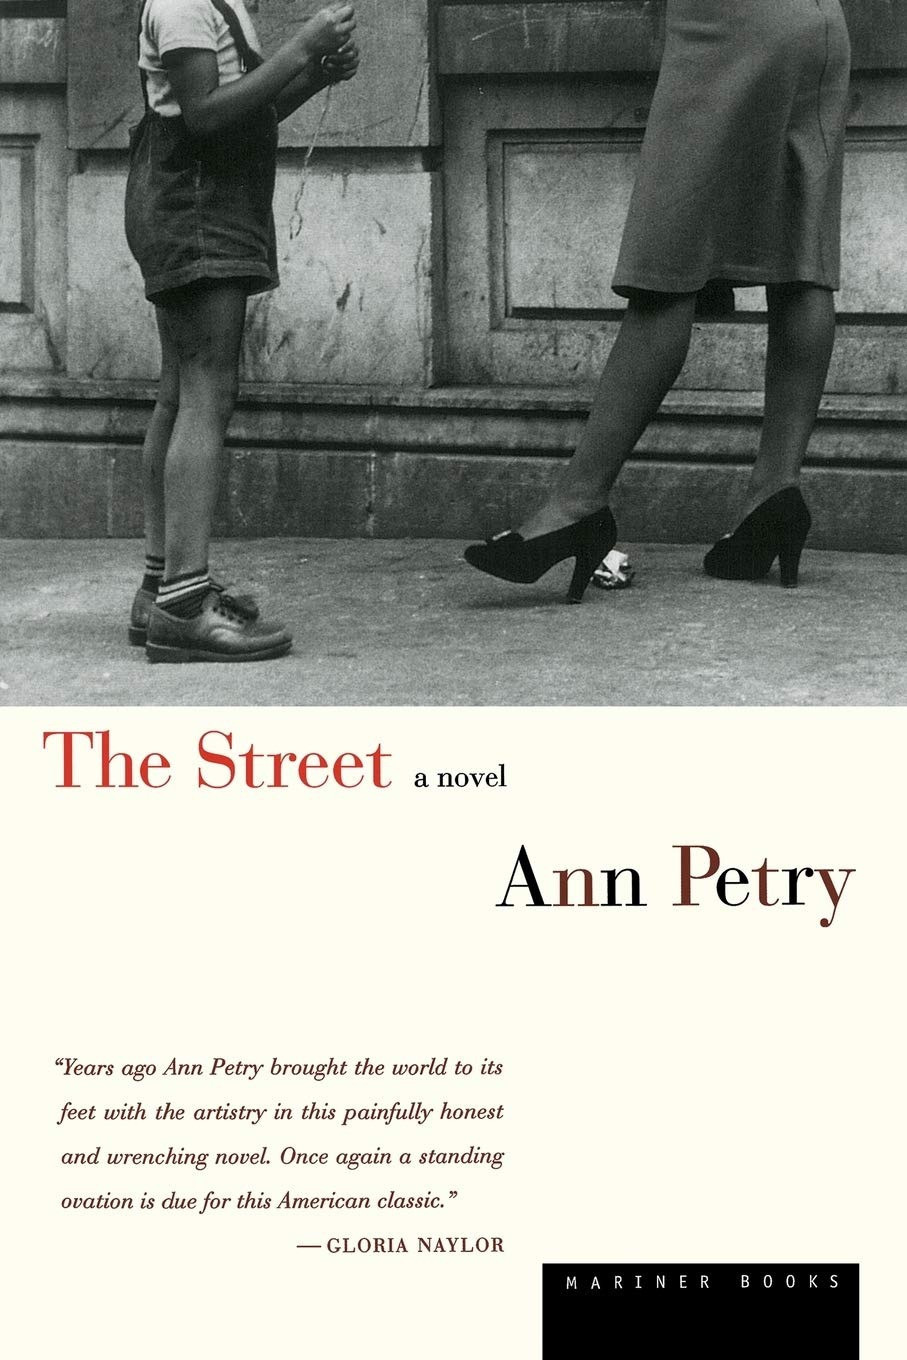 The Street by Ann Petry thebookslut book reviews quarentine reads black and white picture vintage retro photography cover stockings high heels young boy in shorts